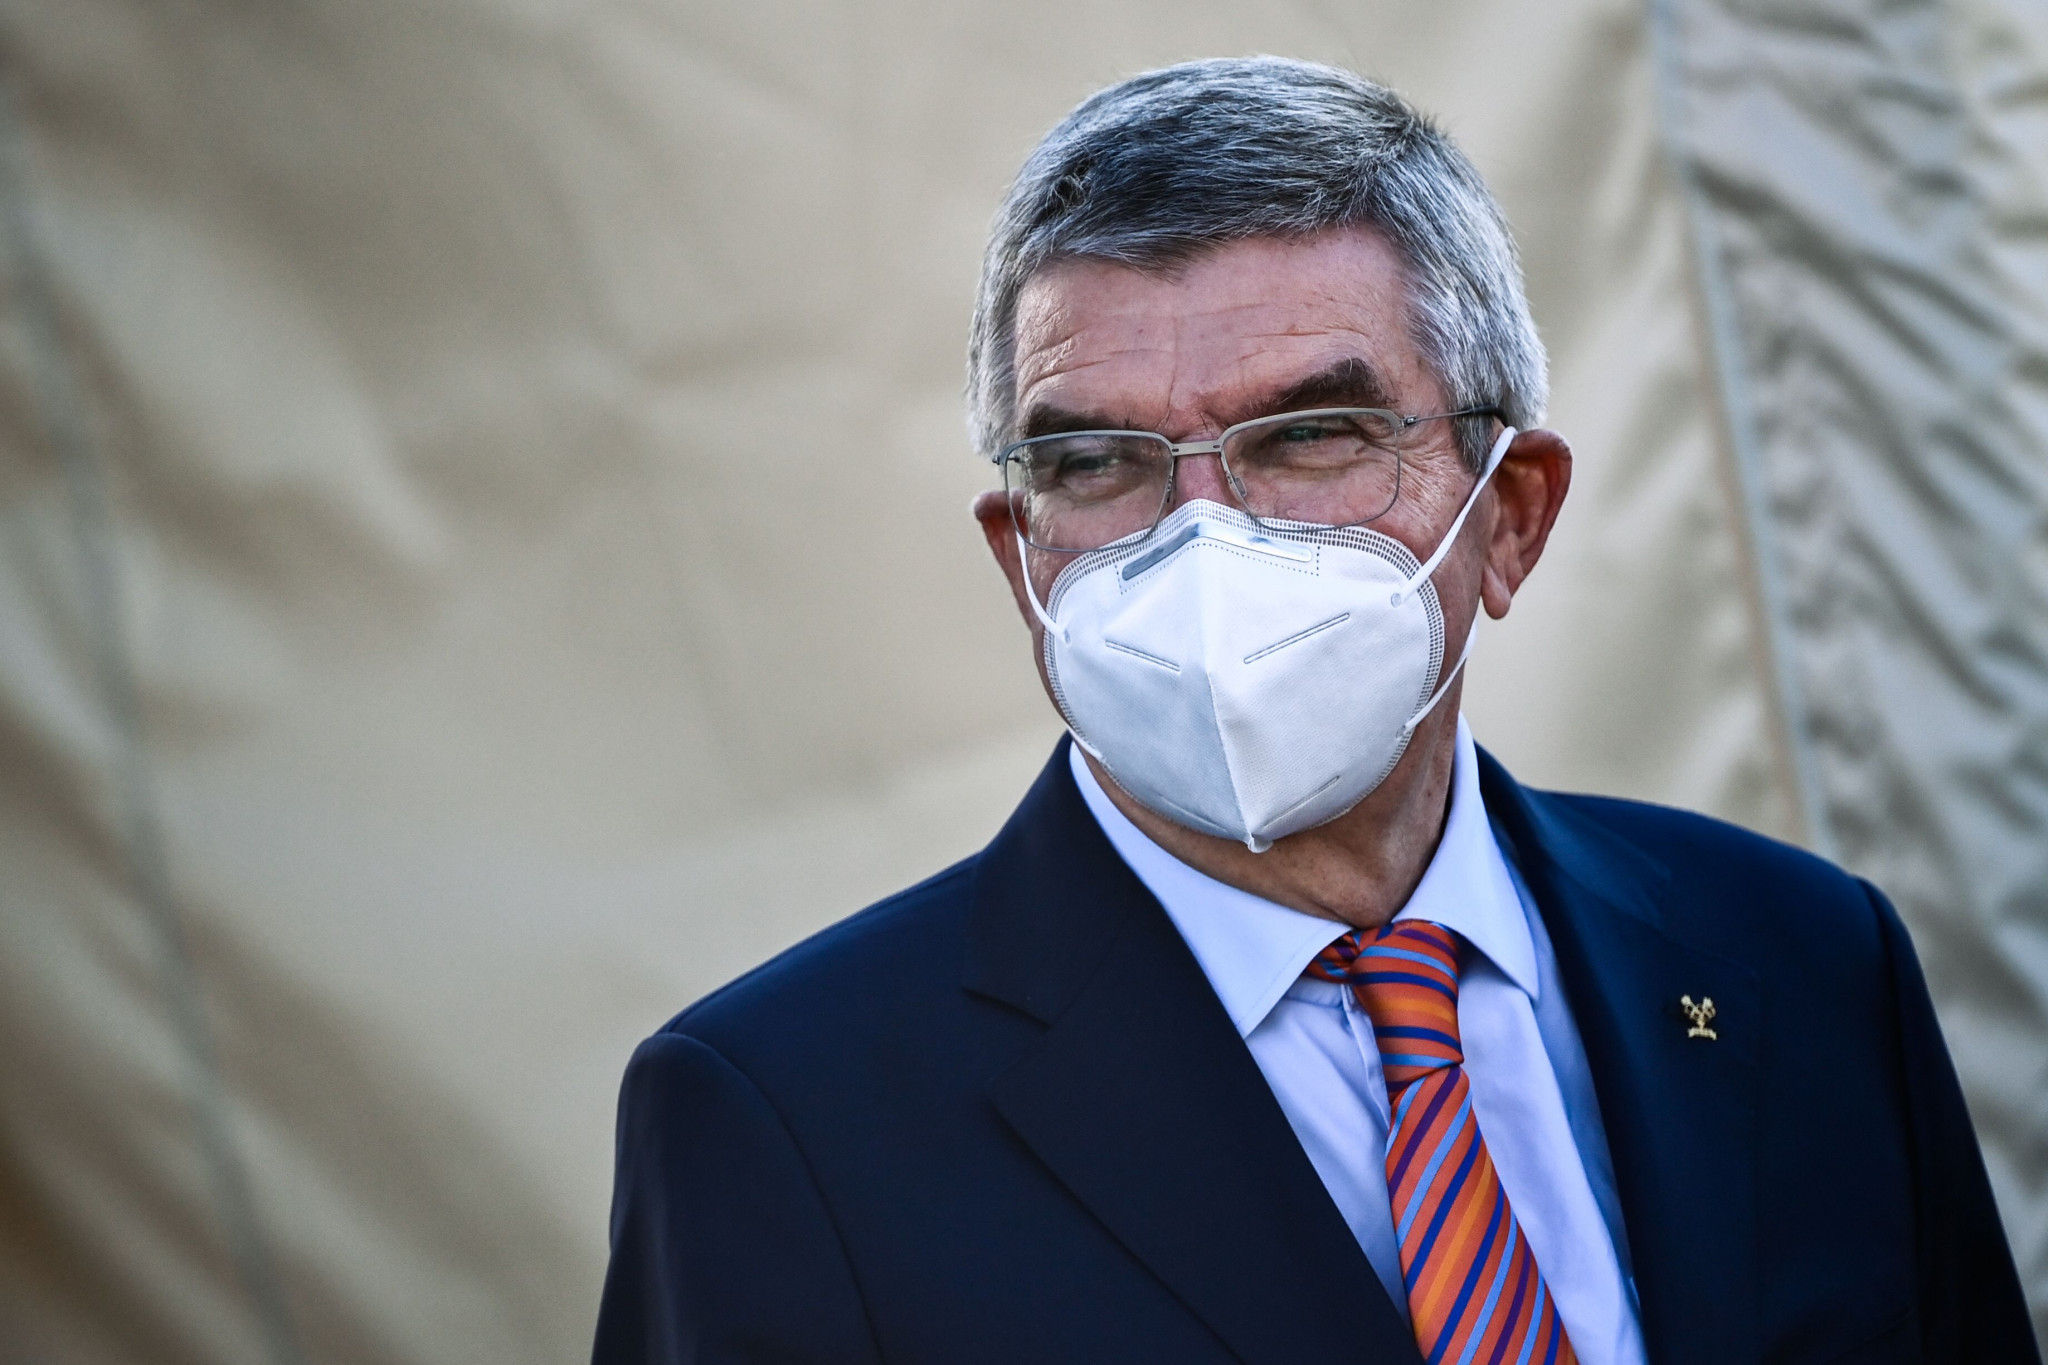 IOC President Thomas Bach revealed the successful staging of cycling events had given him confidence for Tokyo 2020 ©Getty Images